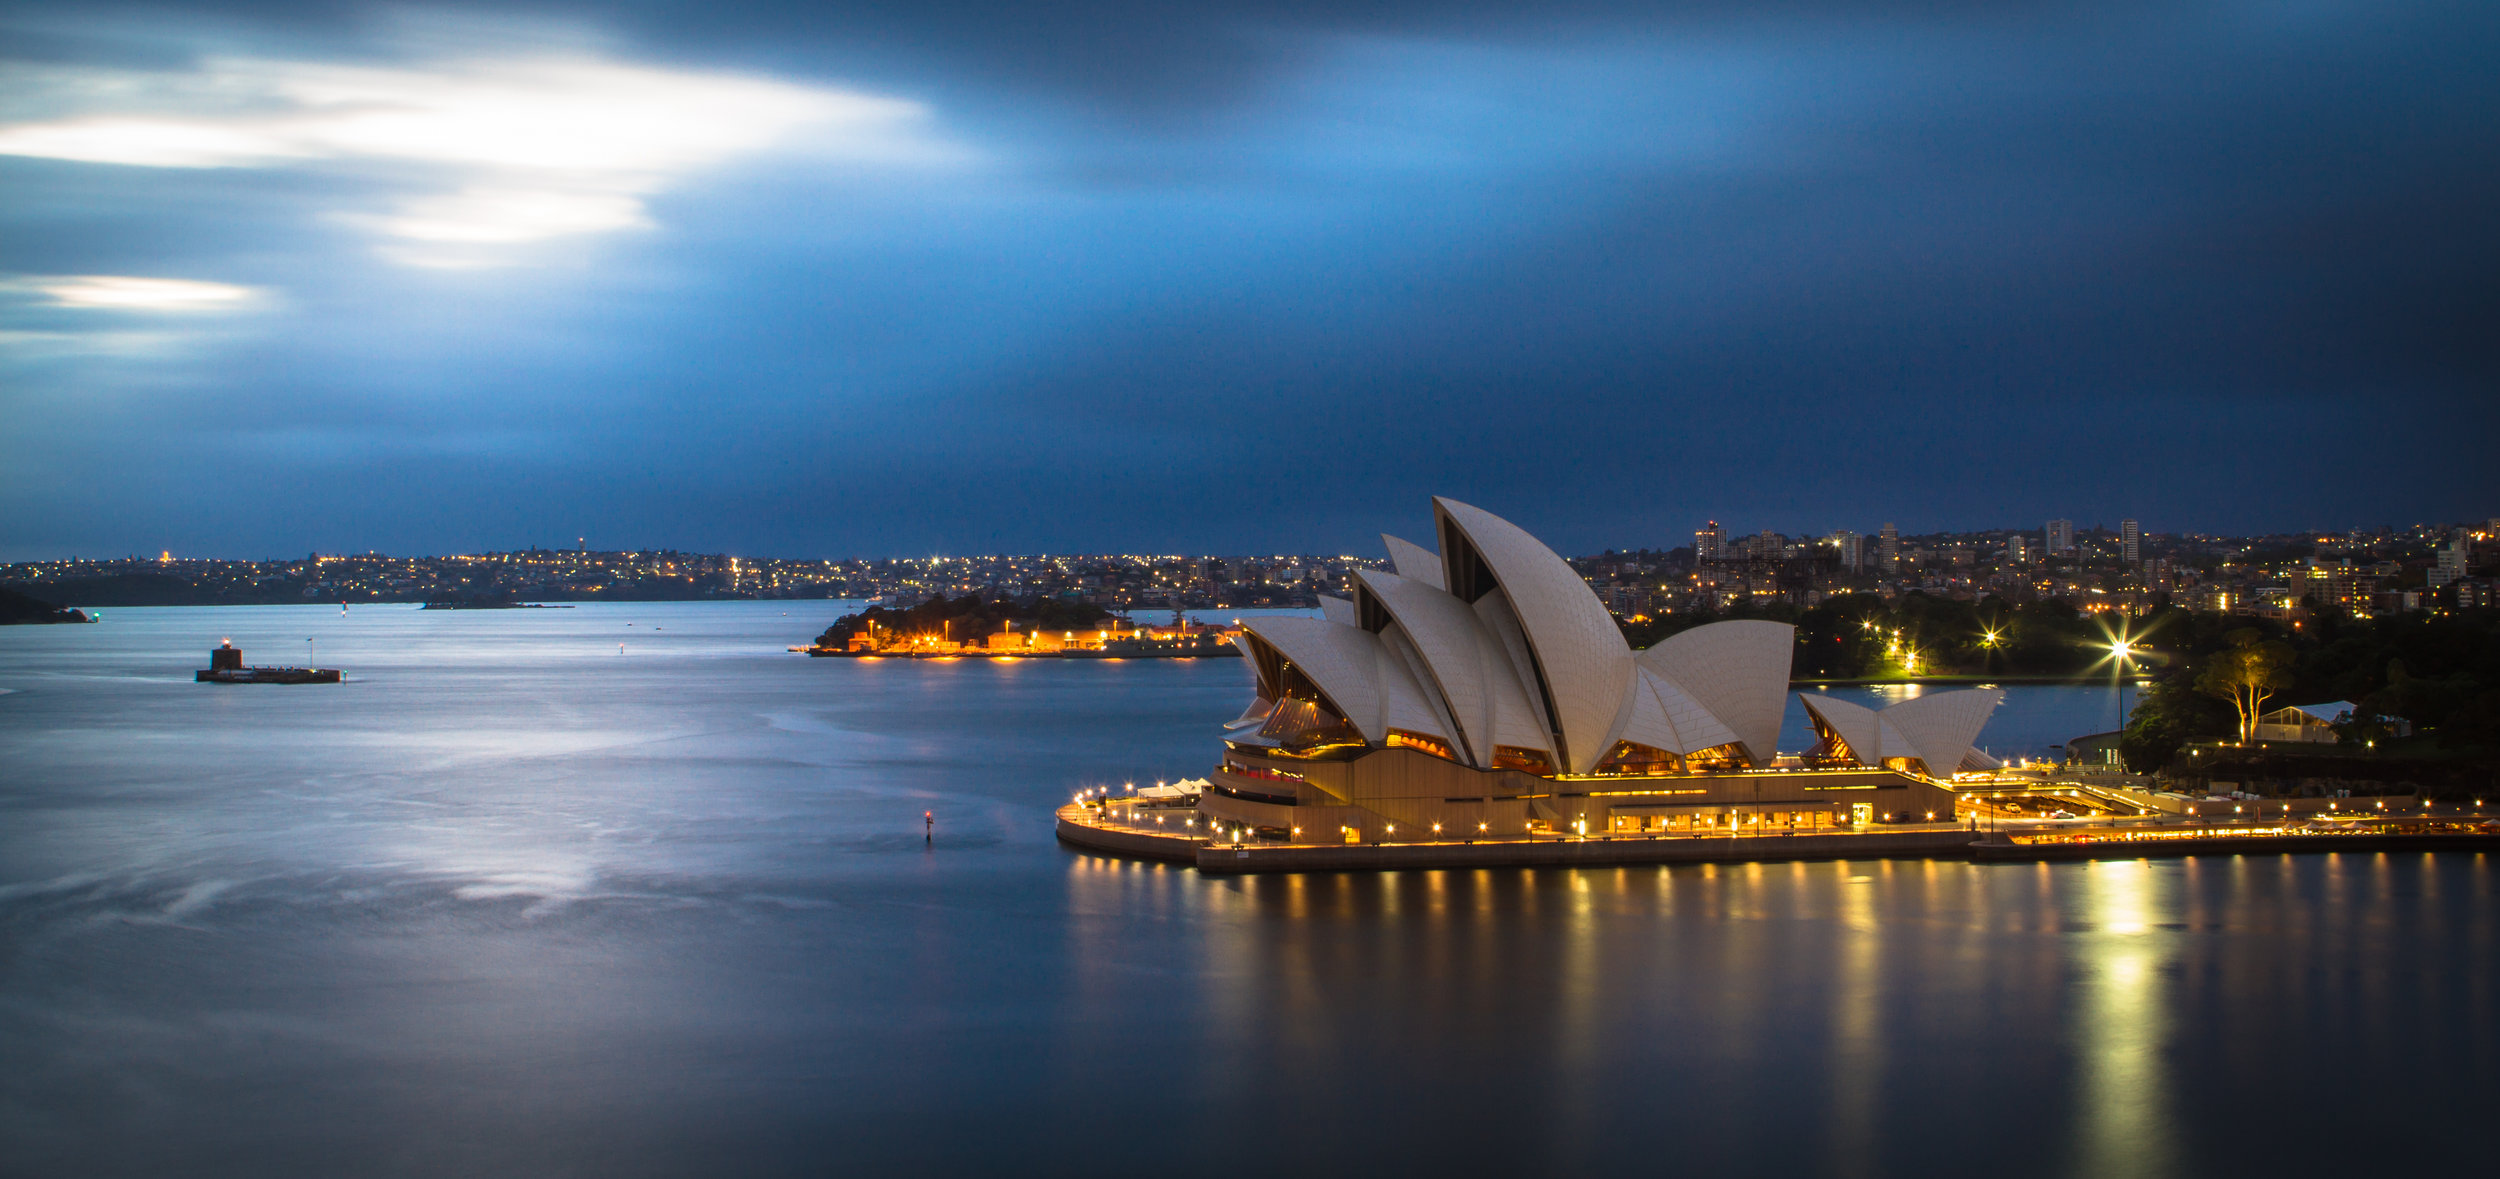 Nighttime view across Sydney harbour, including the Opera House